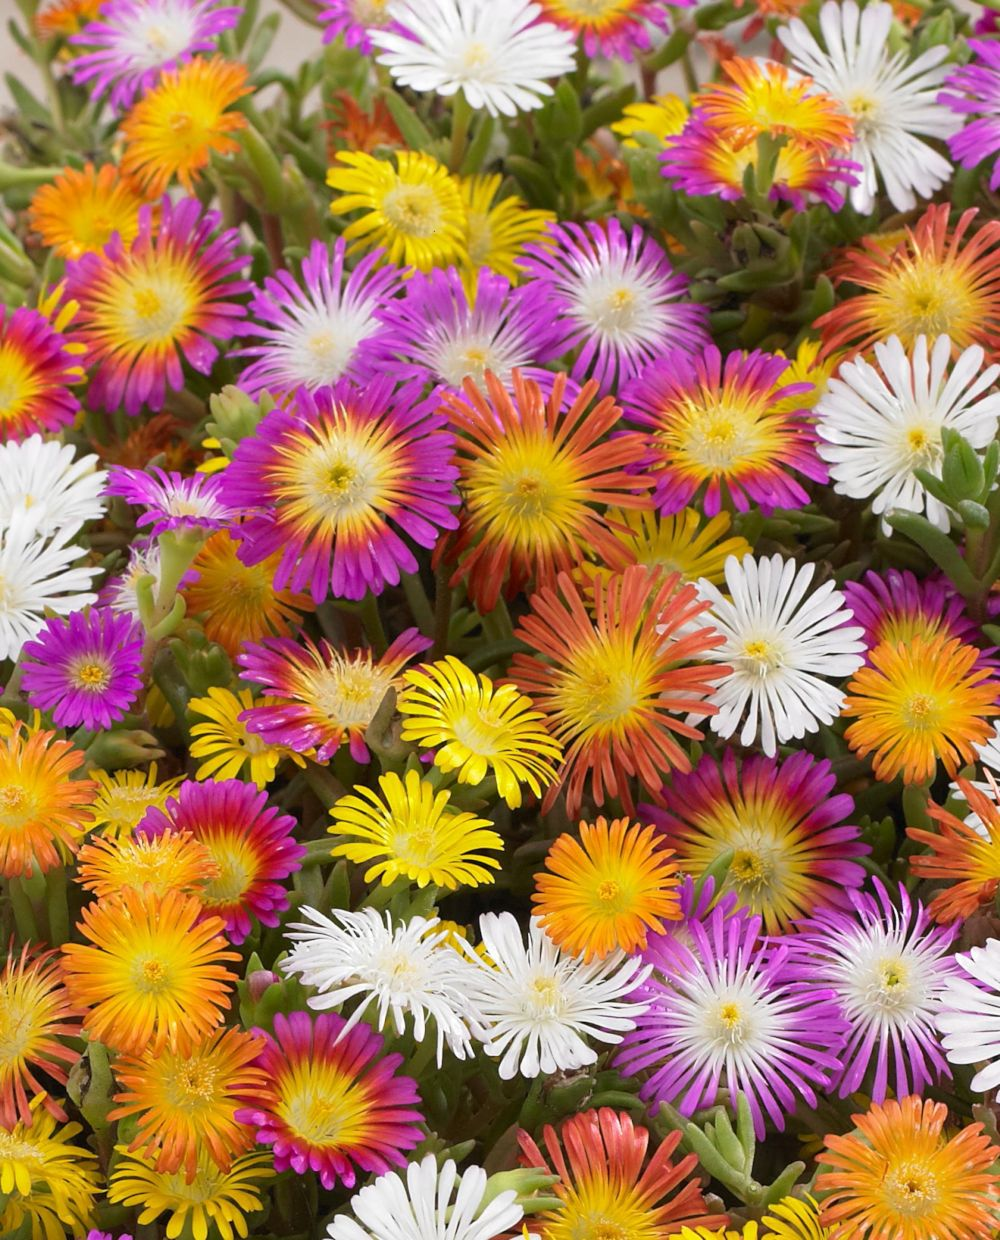 Delosperma Wheels of Wonder mix